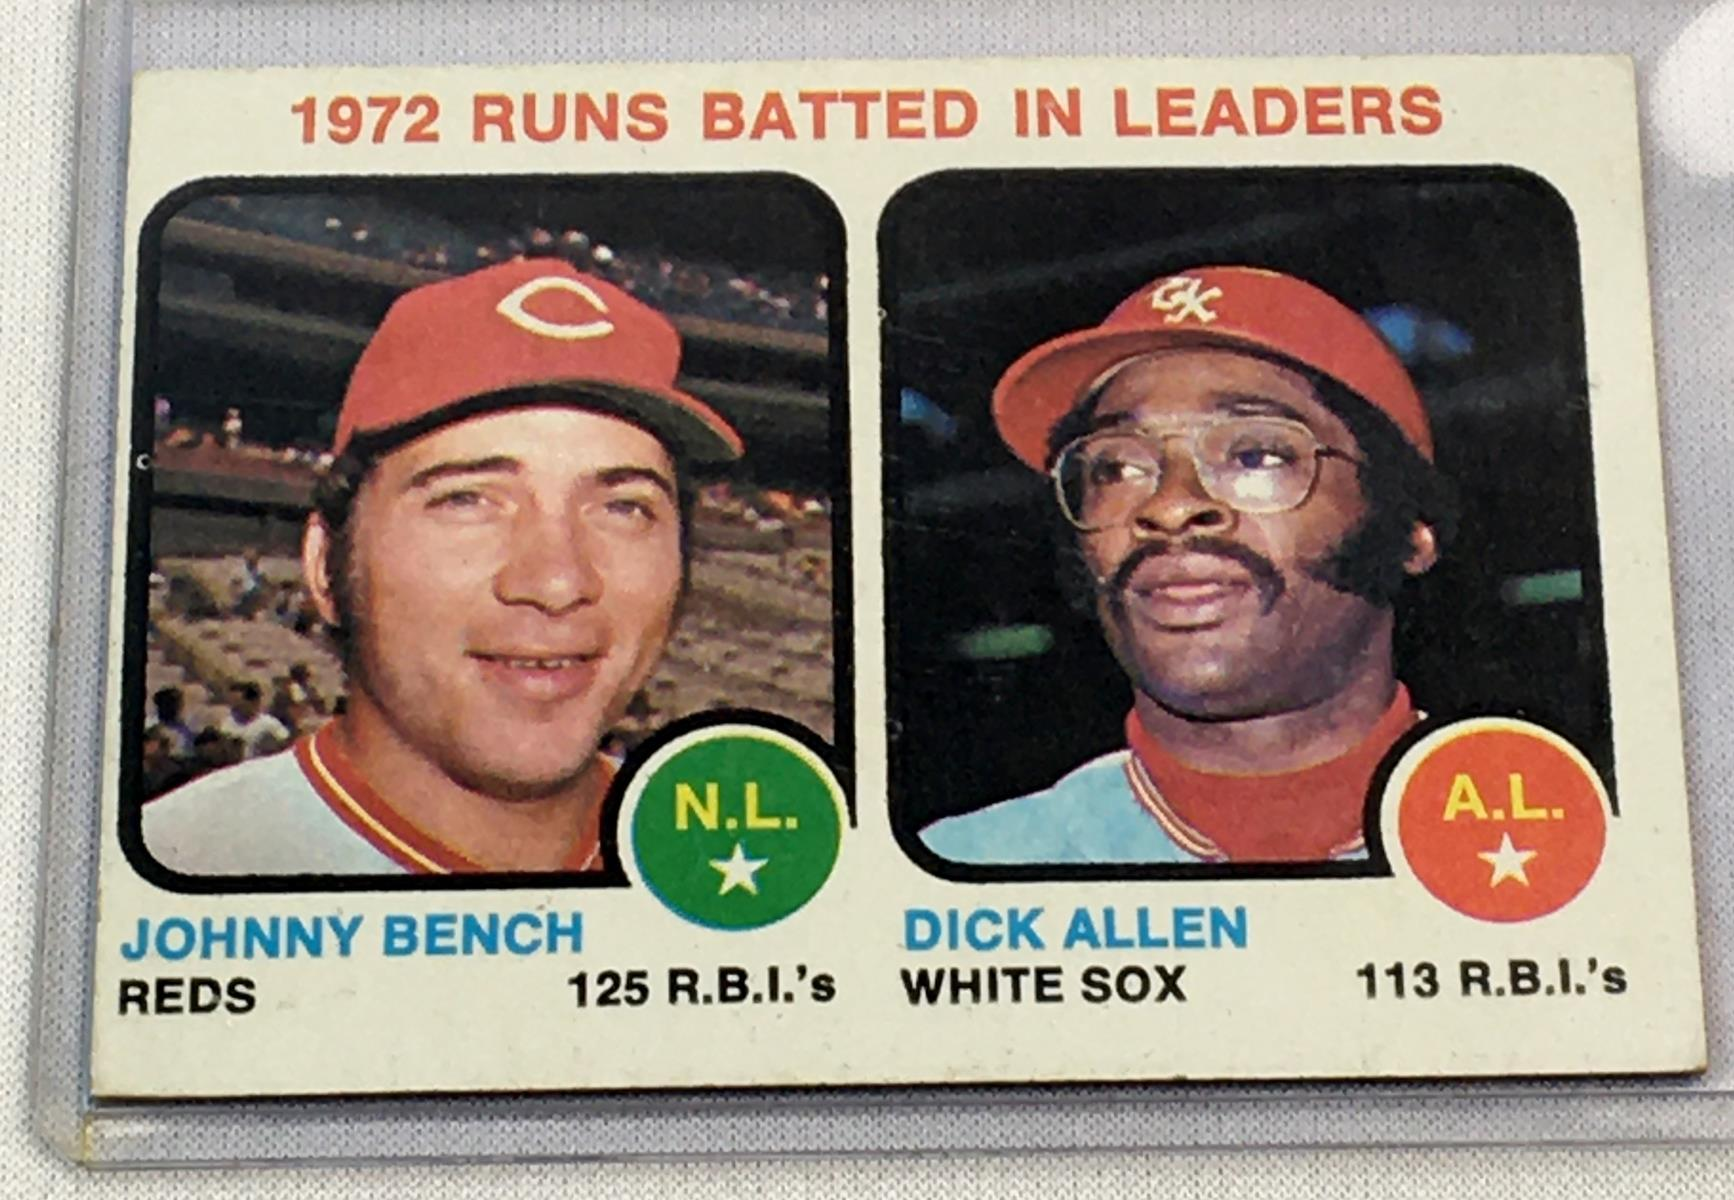 1973 Topps Set Break #63 Runs Batted In Leaders (Johnny Bench and Dick Allen) Card